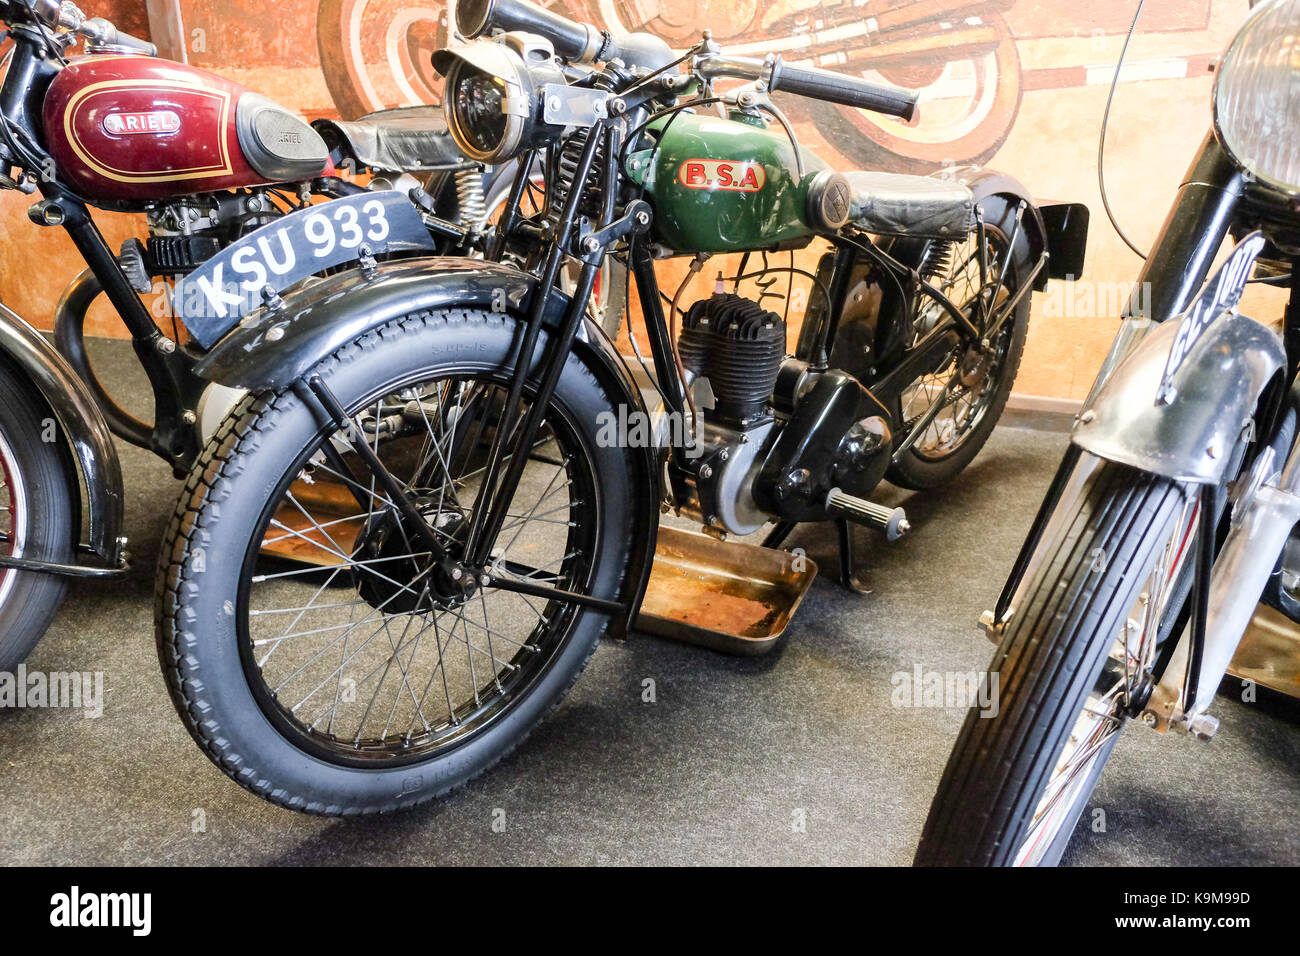 RSA classic British motorcycle at Transport Museum on Anglesey Wales - Stock Image